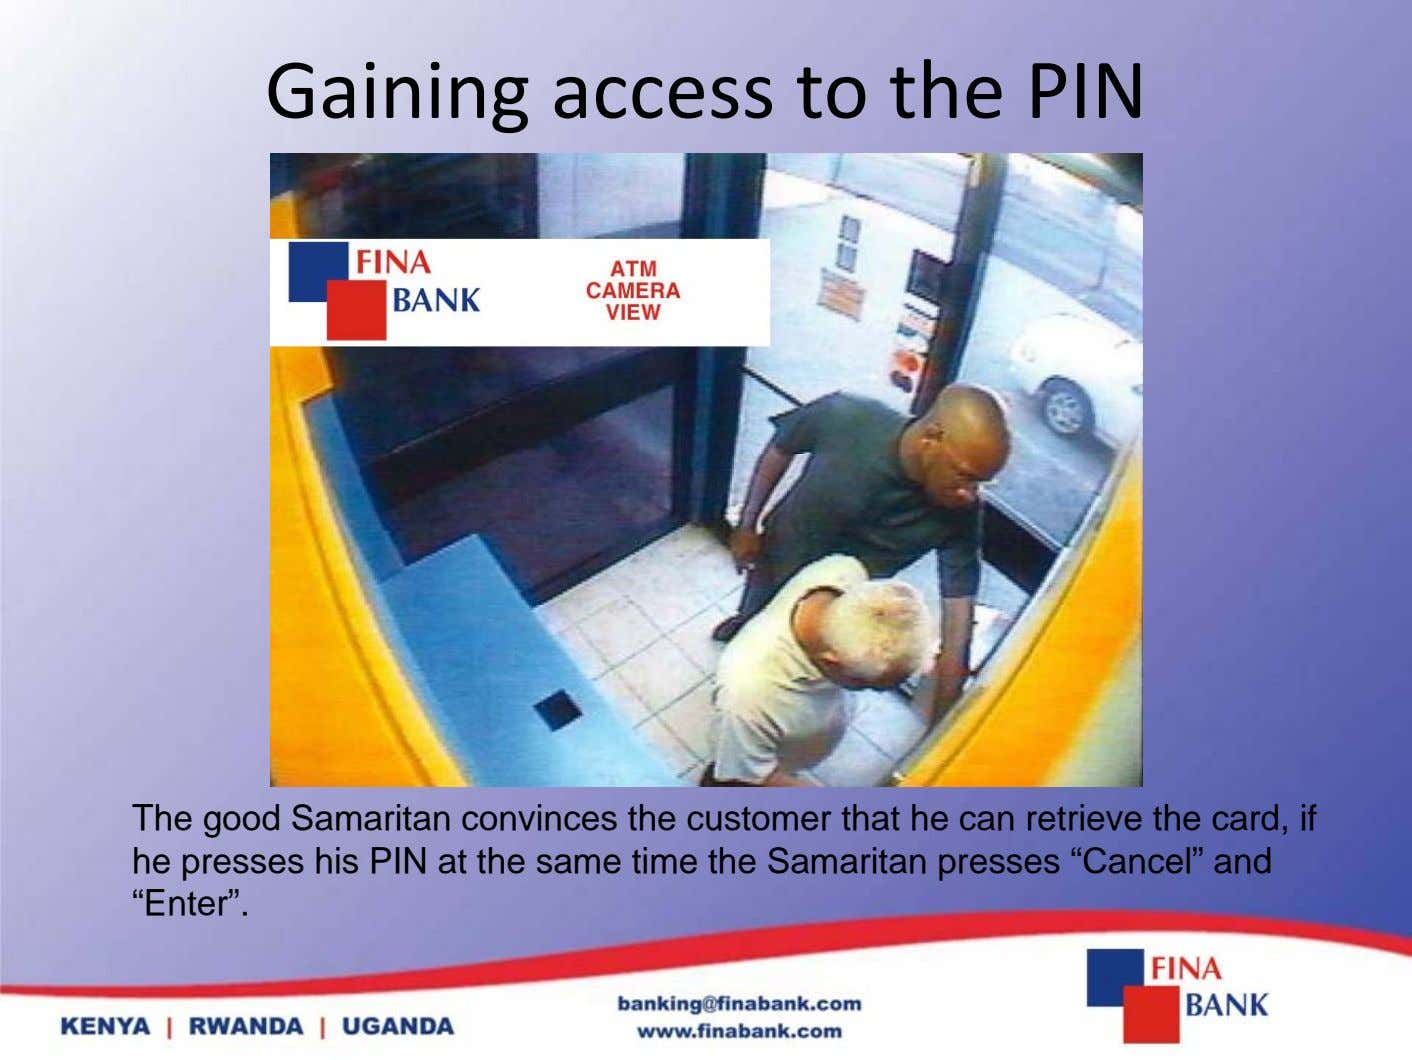 Gaining access to the PIN The good Samaritan convinces the customer that he can retrieve